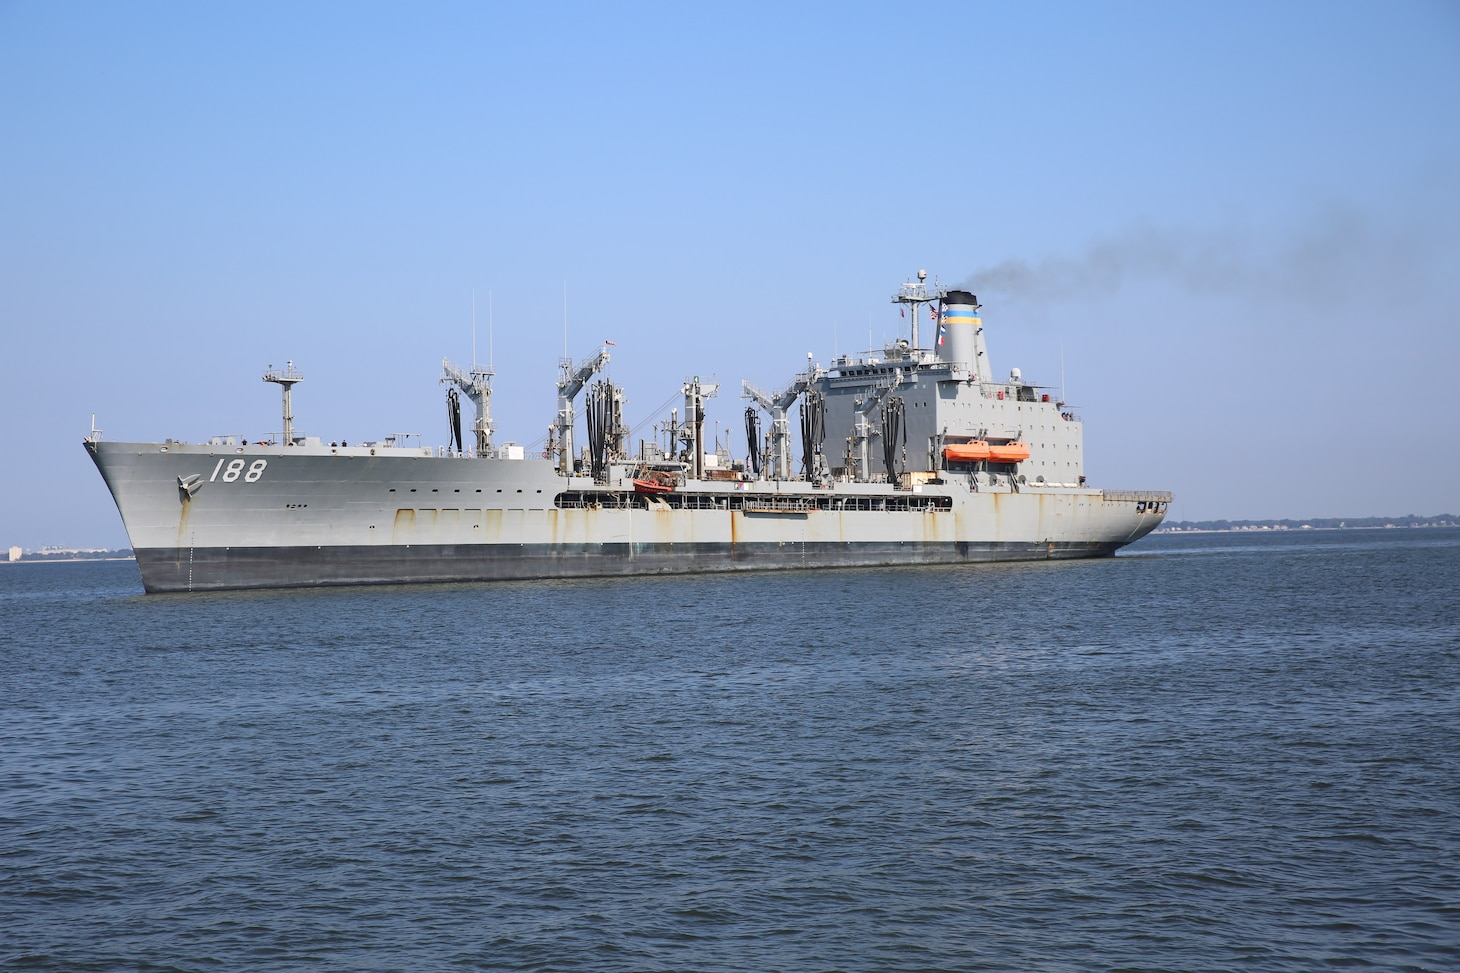 USNS Joshua Humphreys (T-AO 188) returned to Naval Station Norfolk, after completing a five-month deployment in the U.S. Fifth Fleet, responsible for Naval Forces in the Persian Gulf, Red Sea, Arabian Sea, and parts of the Indian Ocean, August 11.